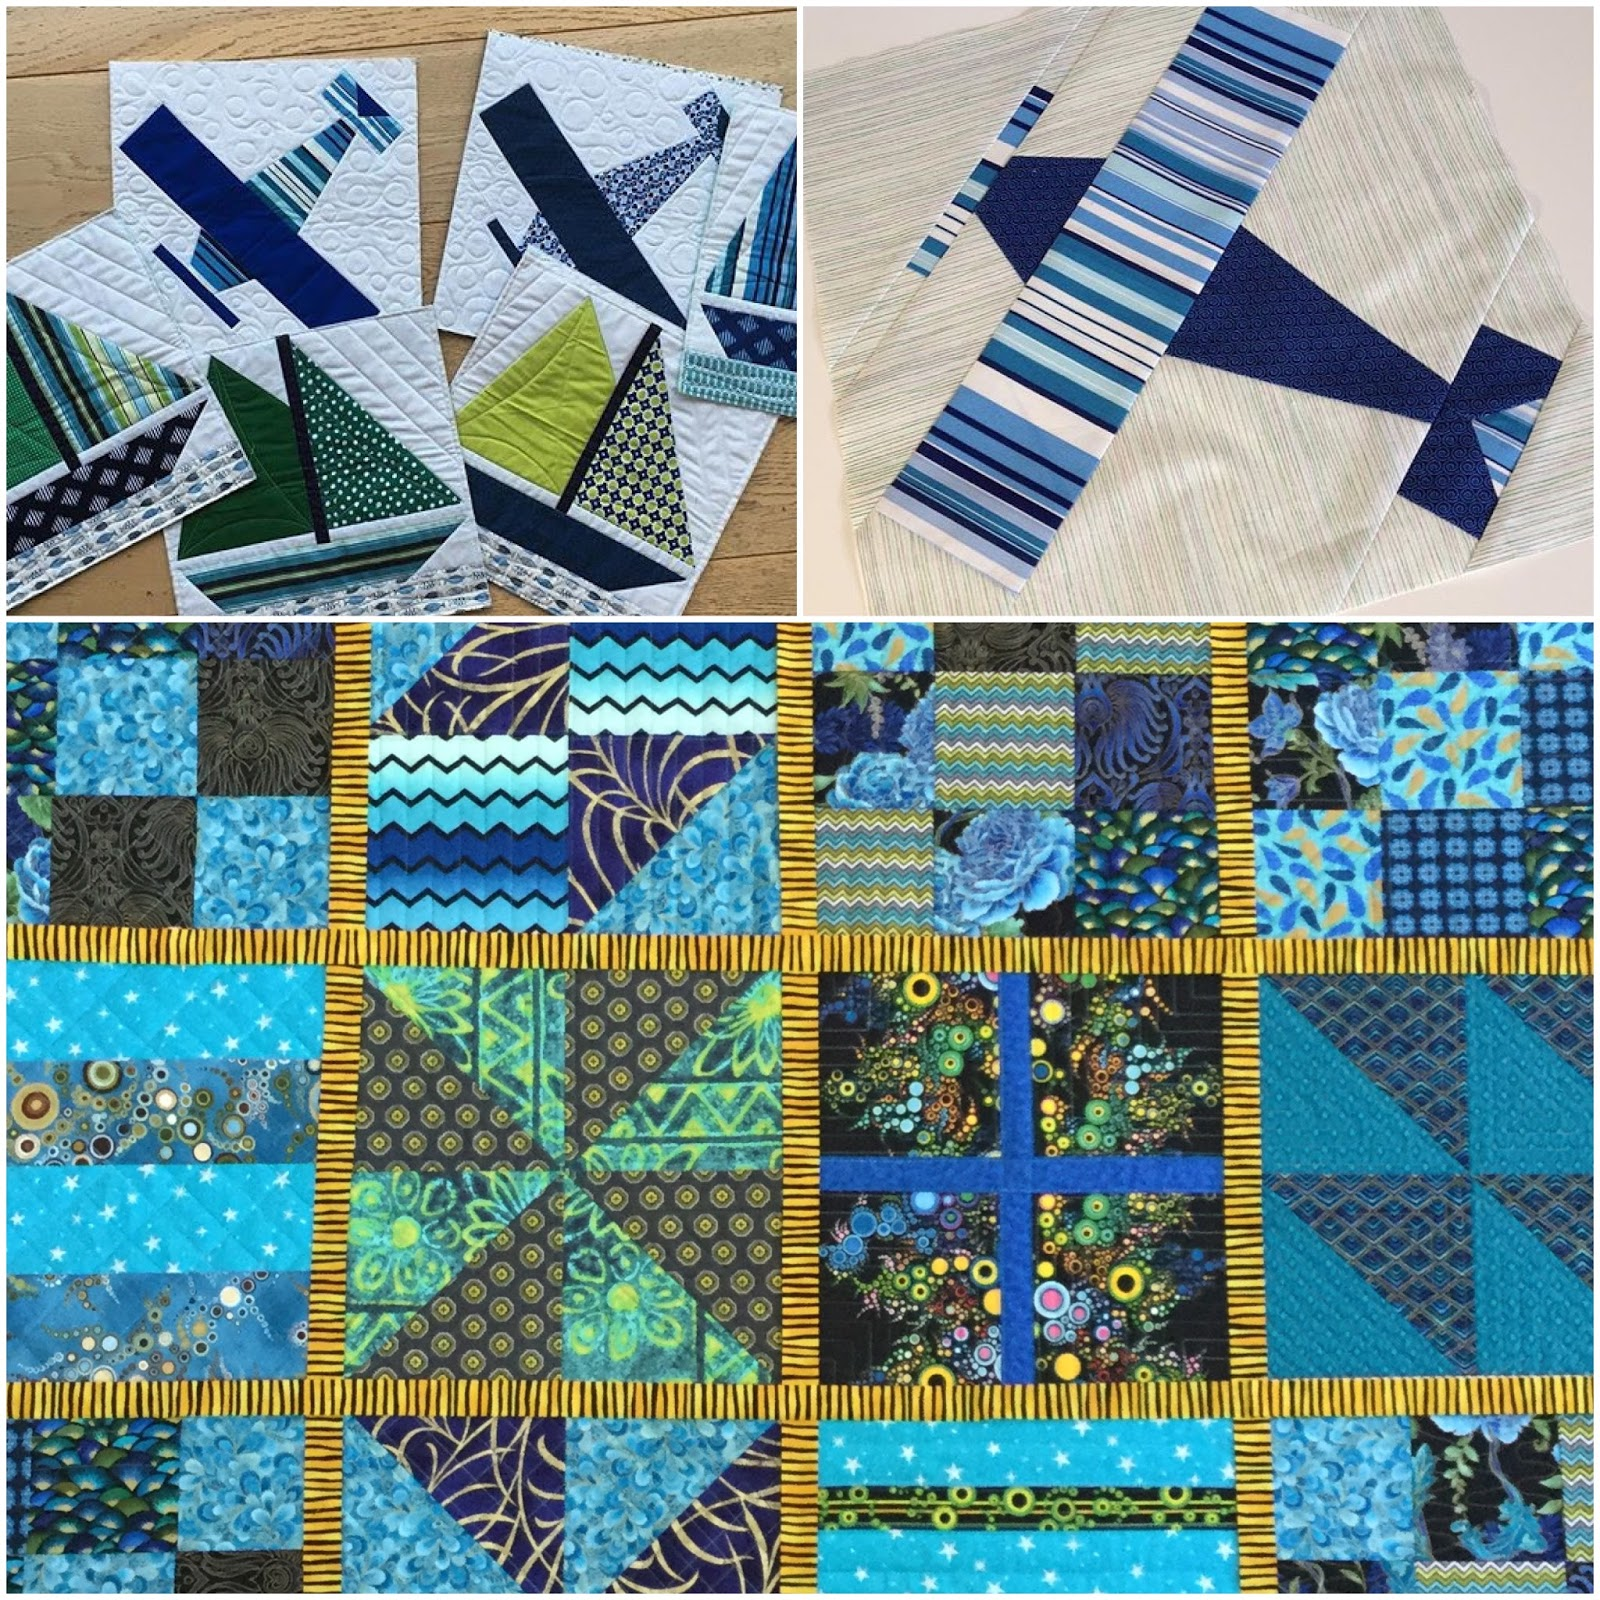 Wendy's quilts and more: Soy Amado Quilts - Giving back : little island quilting - Adamdwight.com